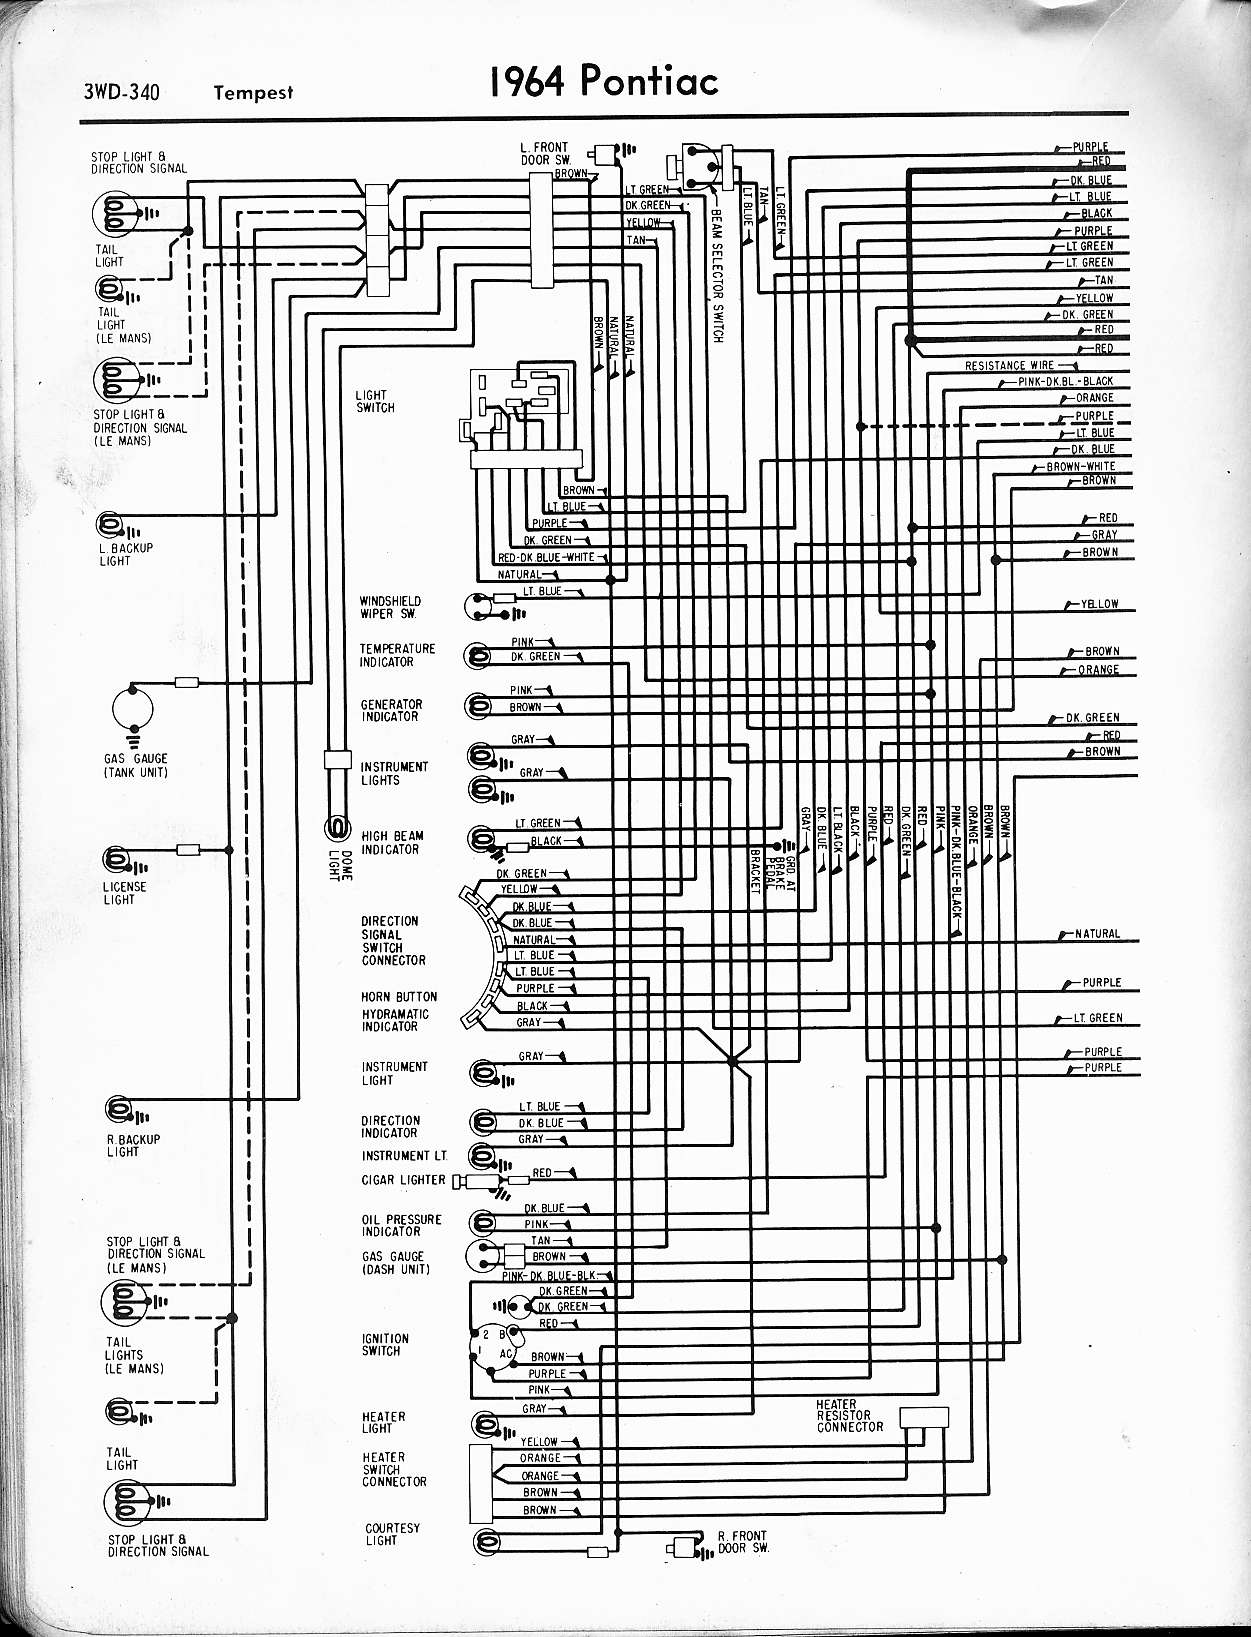 2004 Pontiac Gto Wiring Schematic Diagram Will Be A Thing 2000 Sunfire Radio Harness 1964 Chevy Coil Diagrams Detailed Schematics Rh Jvpacks Com 2009 G6